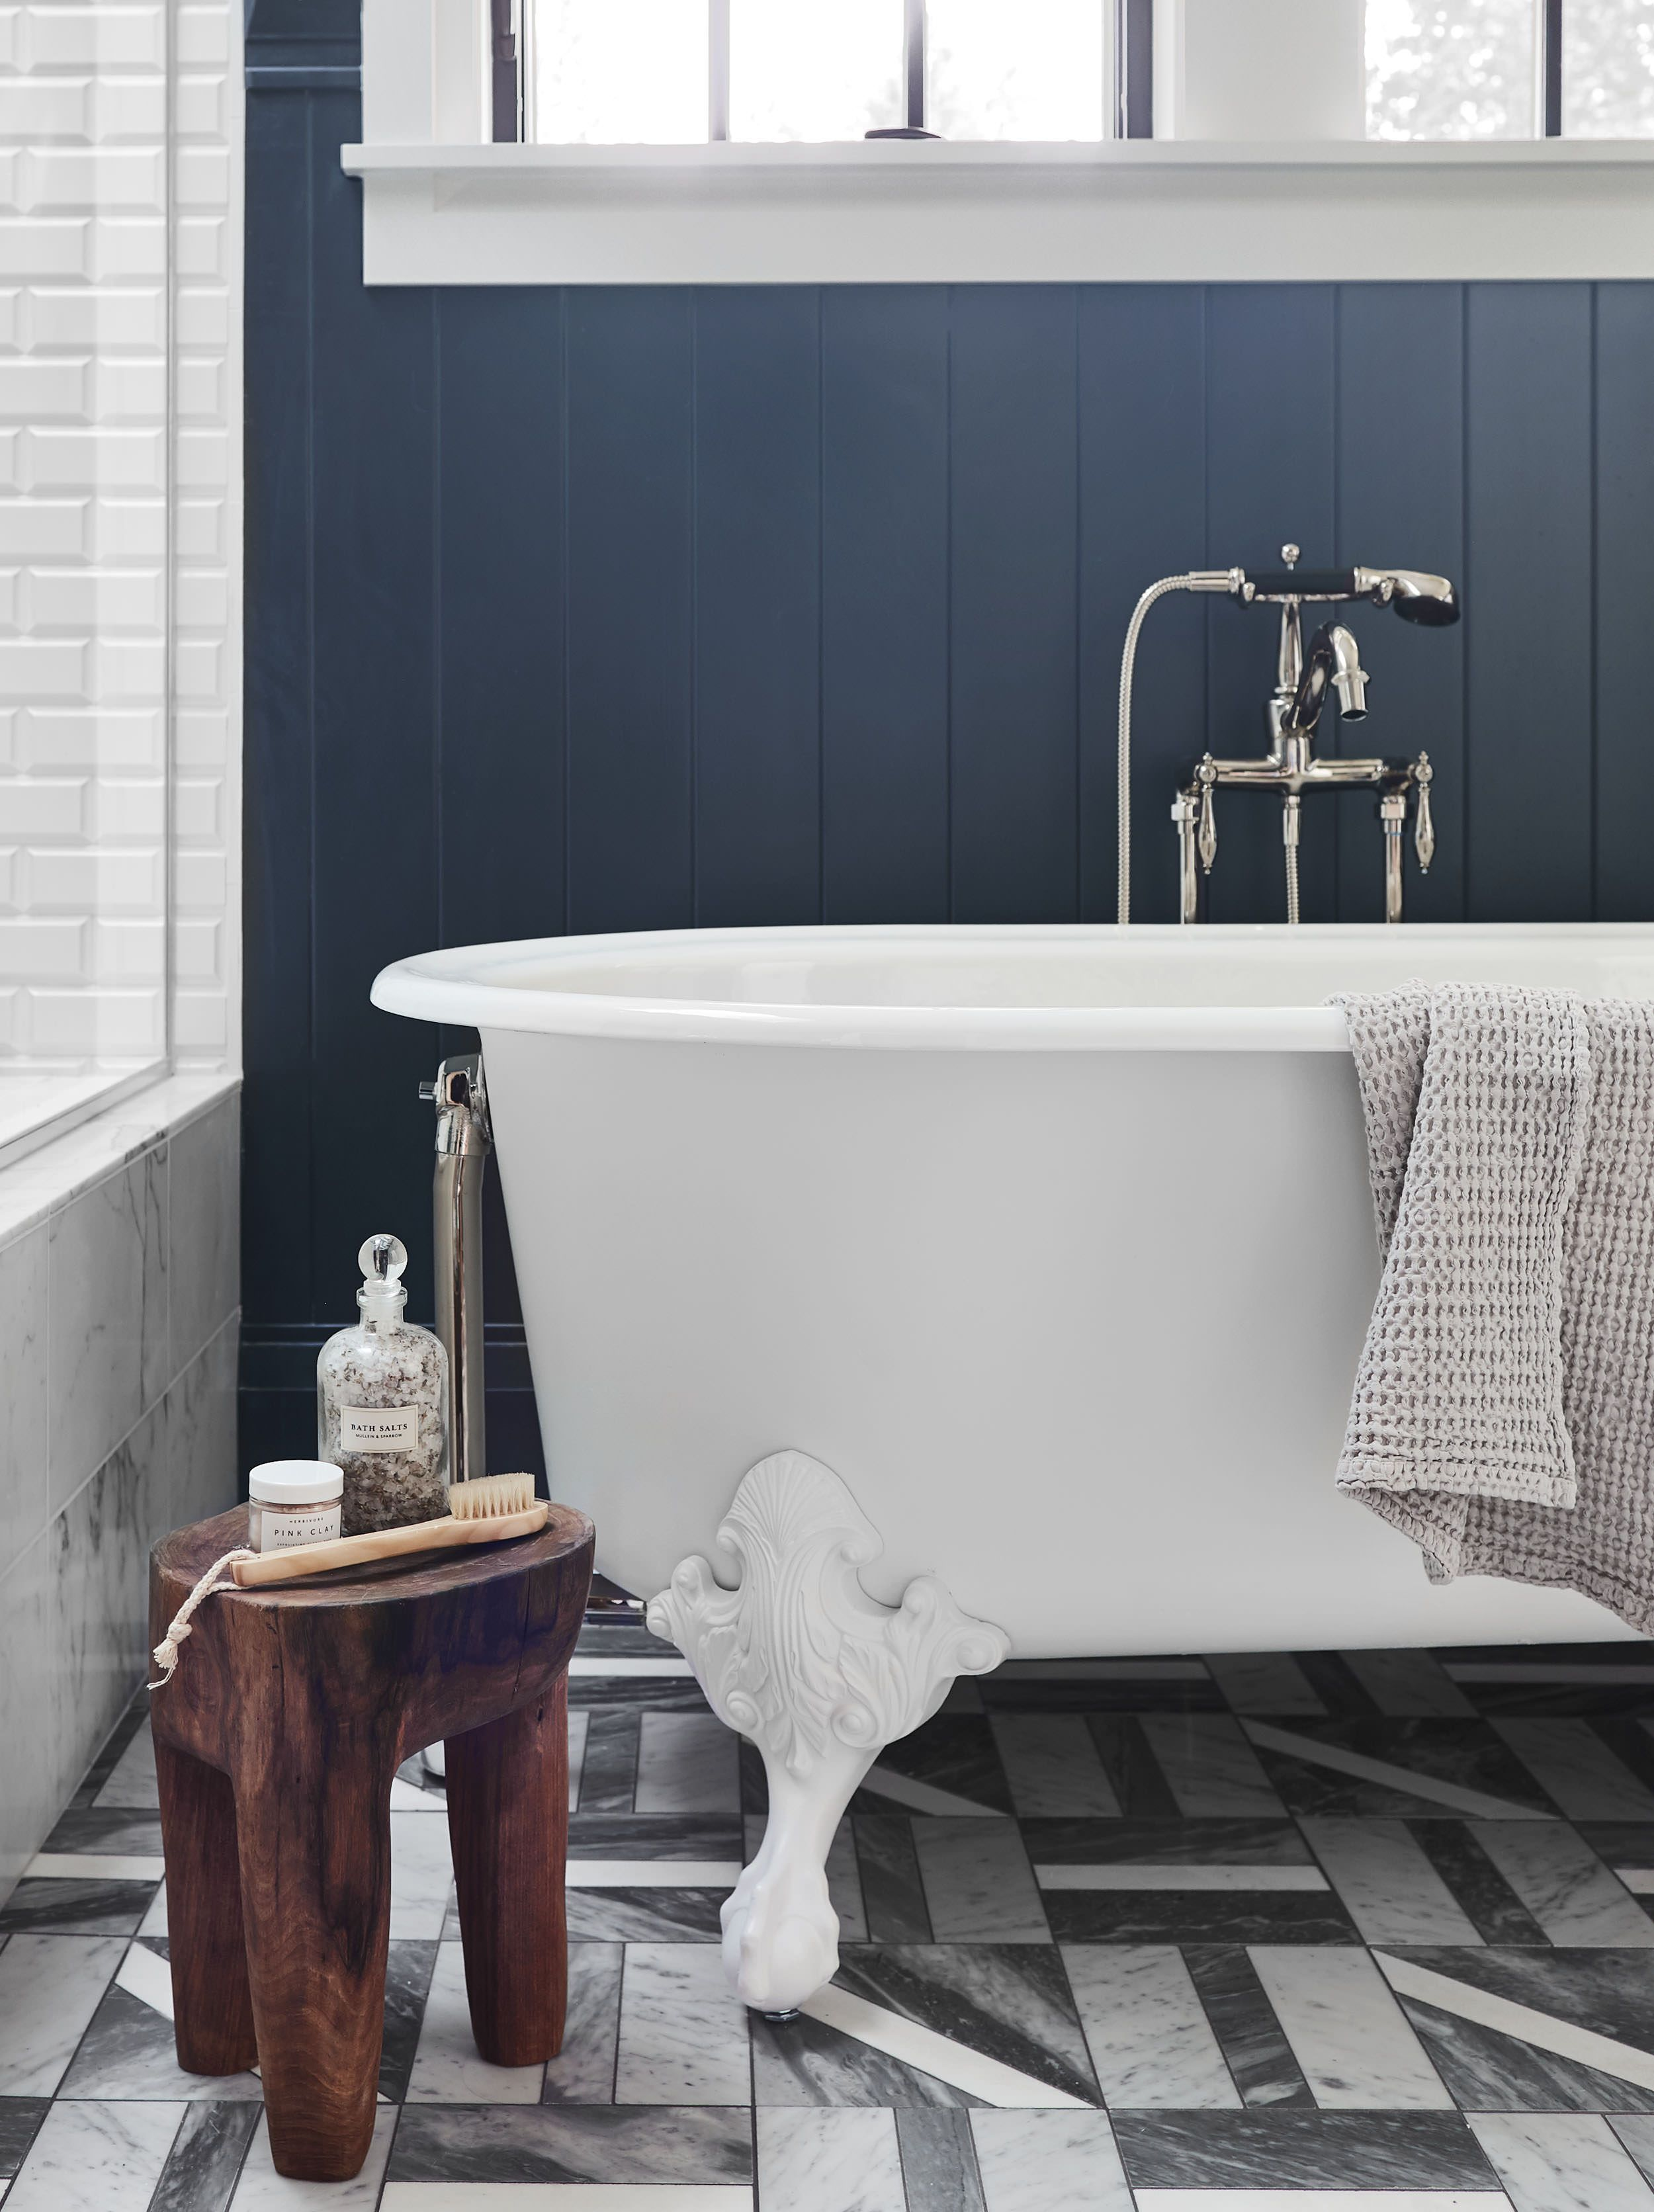 Badezimmer jacuzzi dekoration ideen portland reveal creating the dreamiest of master bathrooms  style